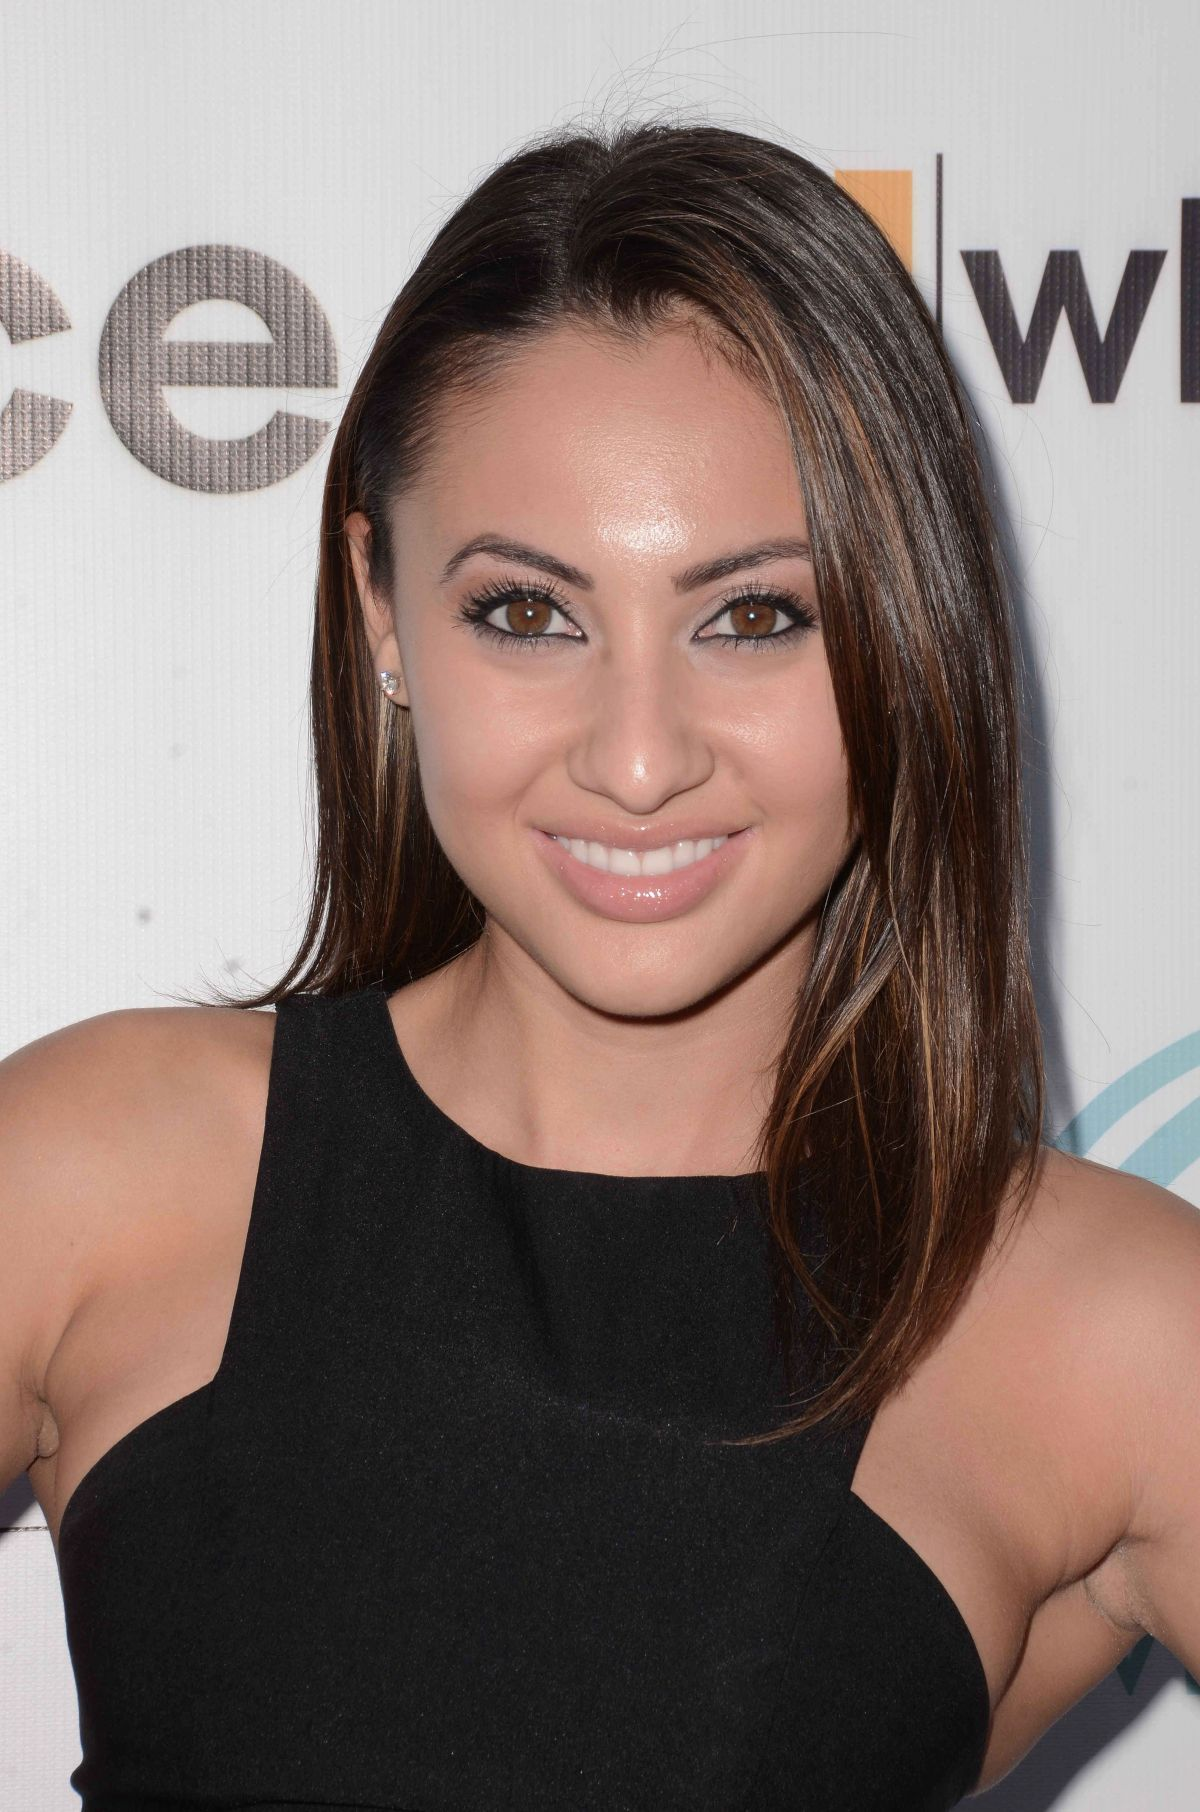 Francia Raisa At World's Largest Pizza Festival - Celebzz ...